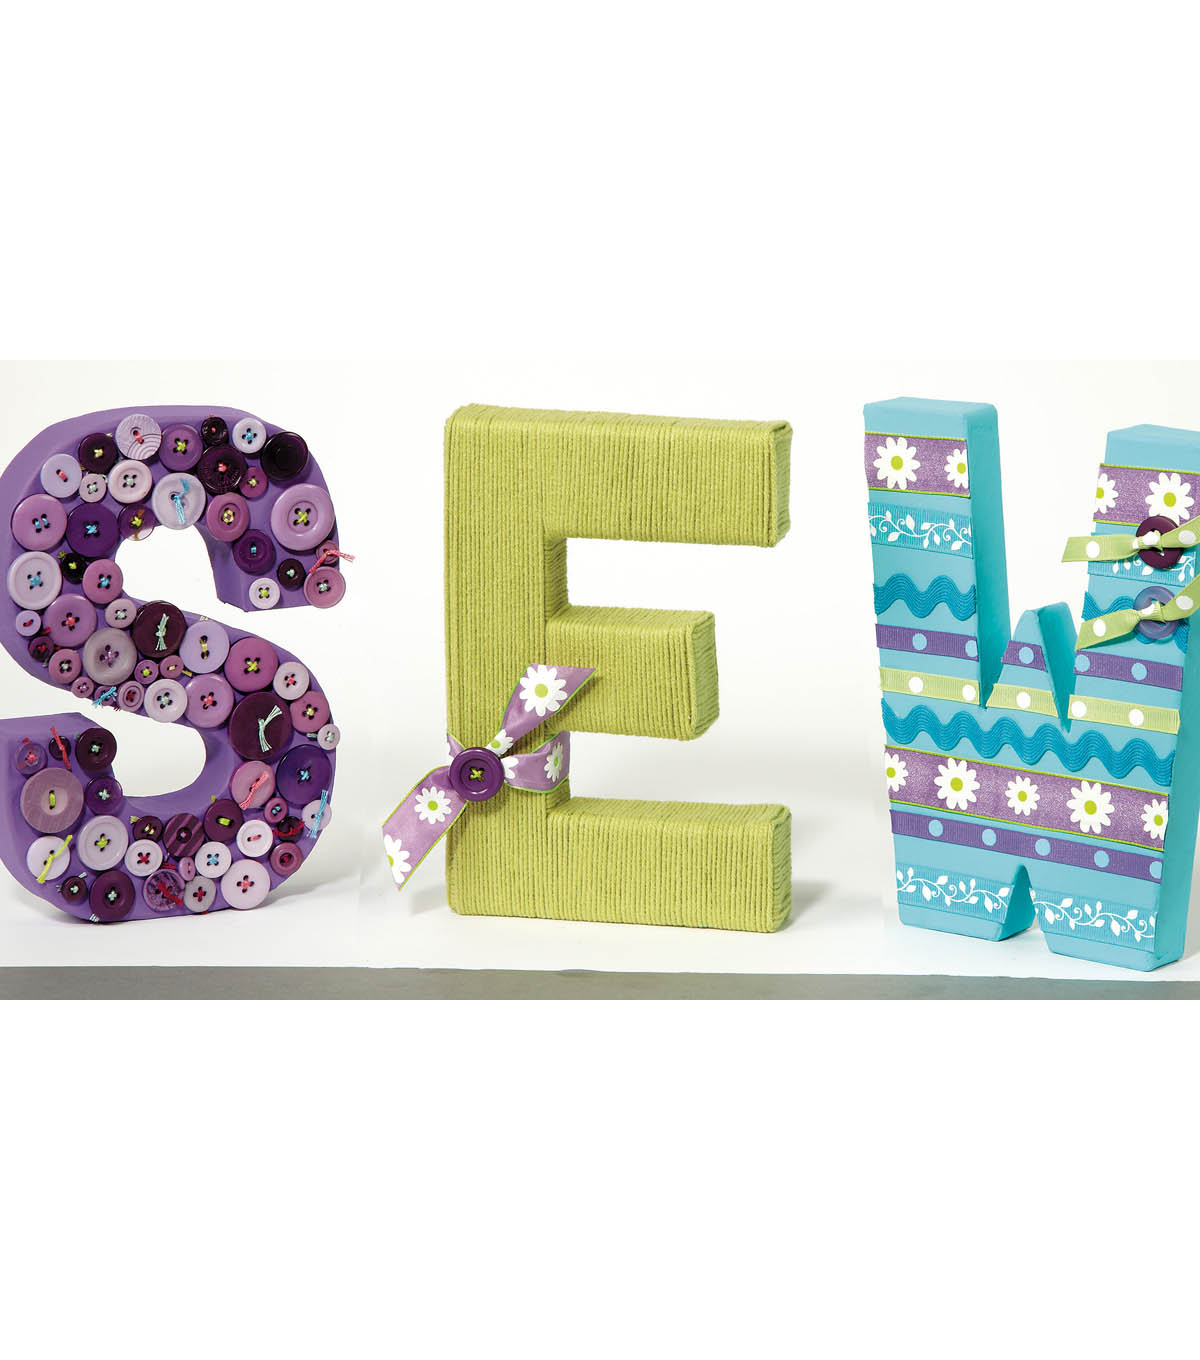 Sew Decorated Letters | JOANN